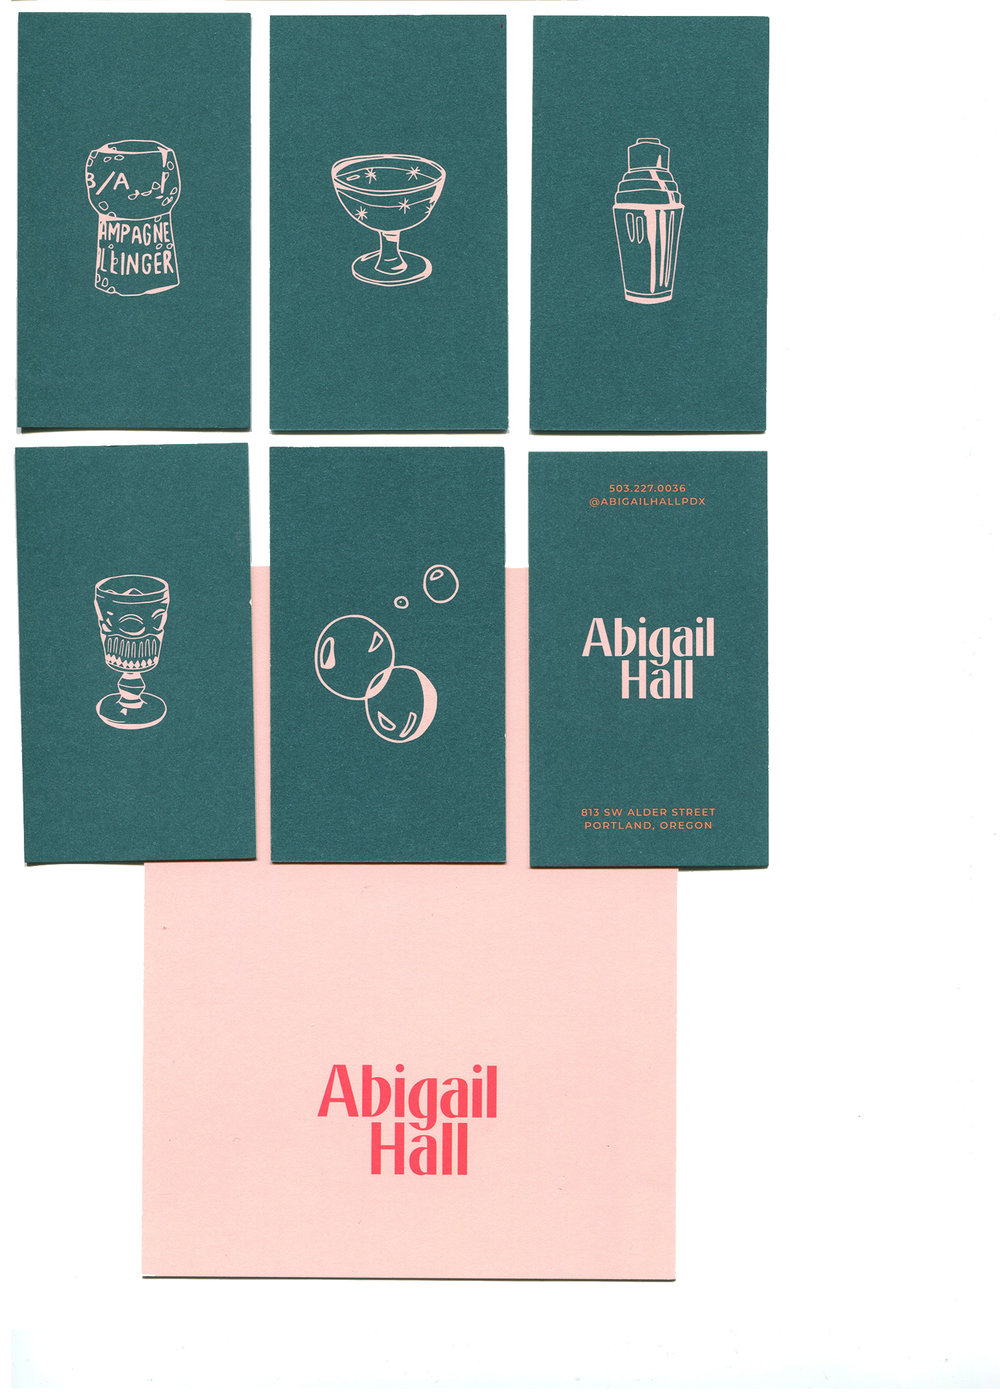 abigail hall product shot 2.jpg